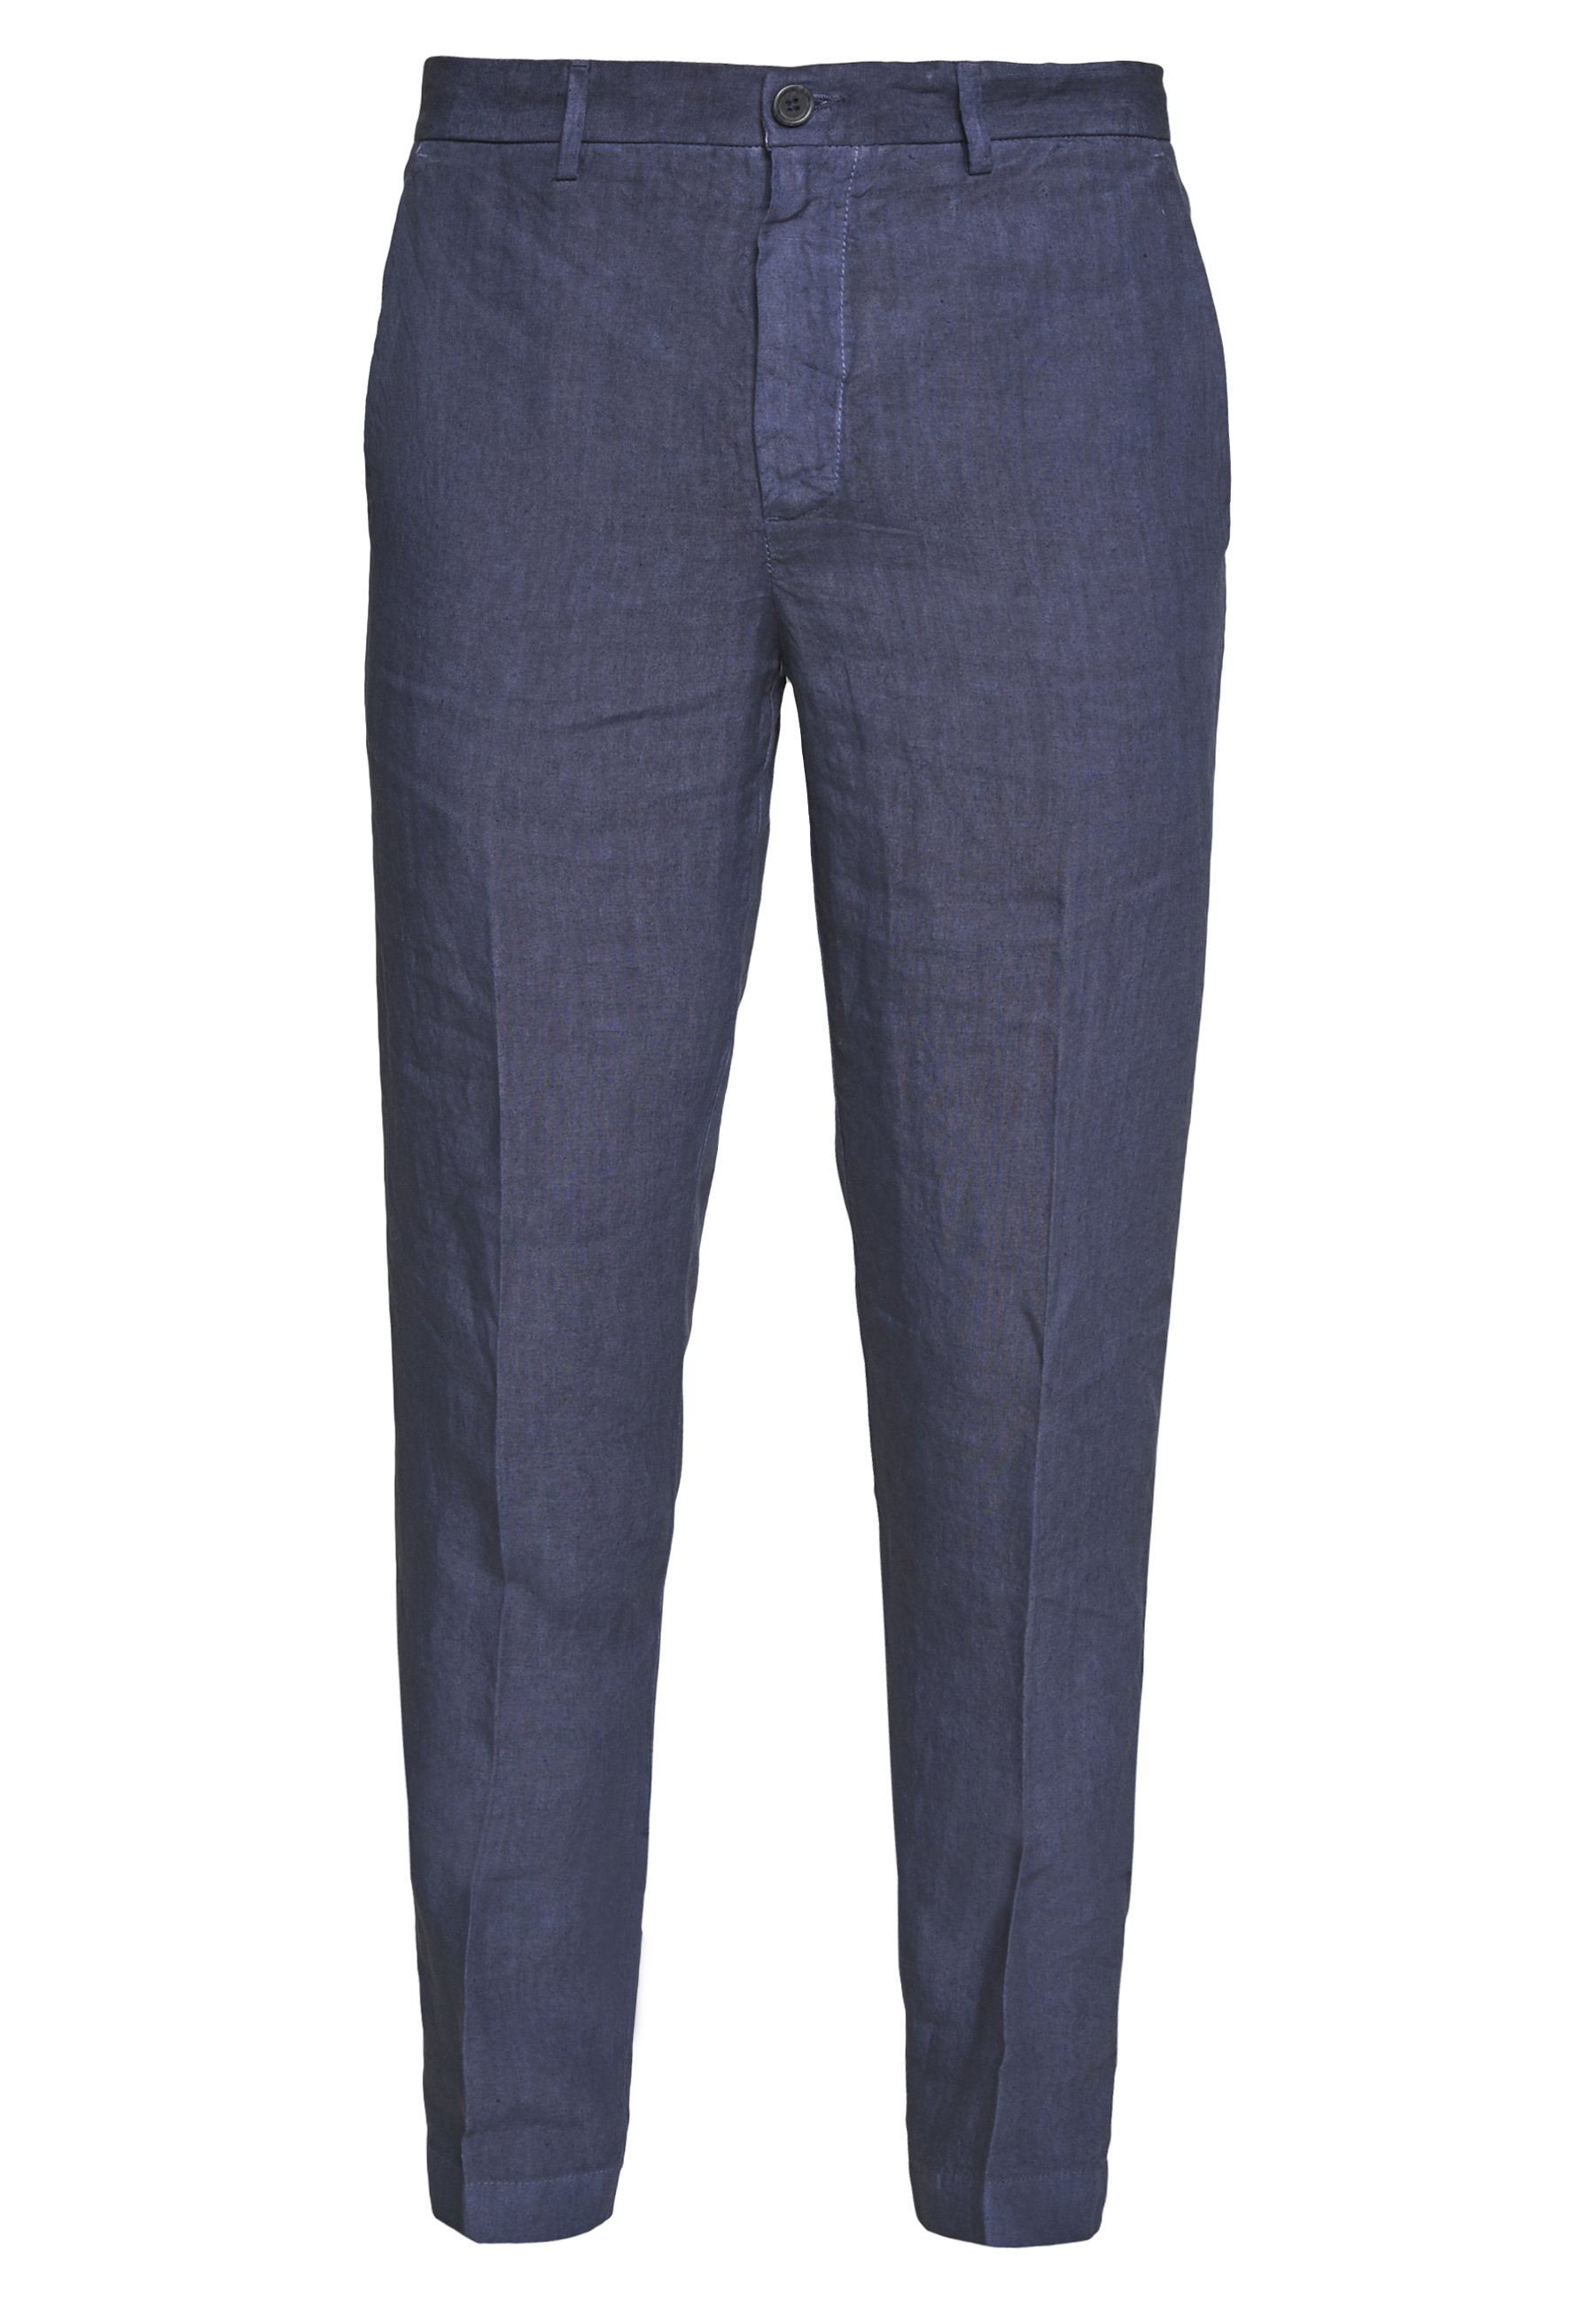 120% Lino Tailored Trousers - Bukser Dark Blue Fade